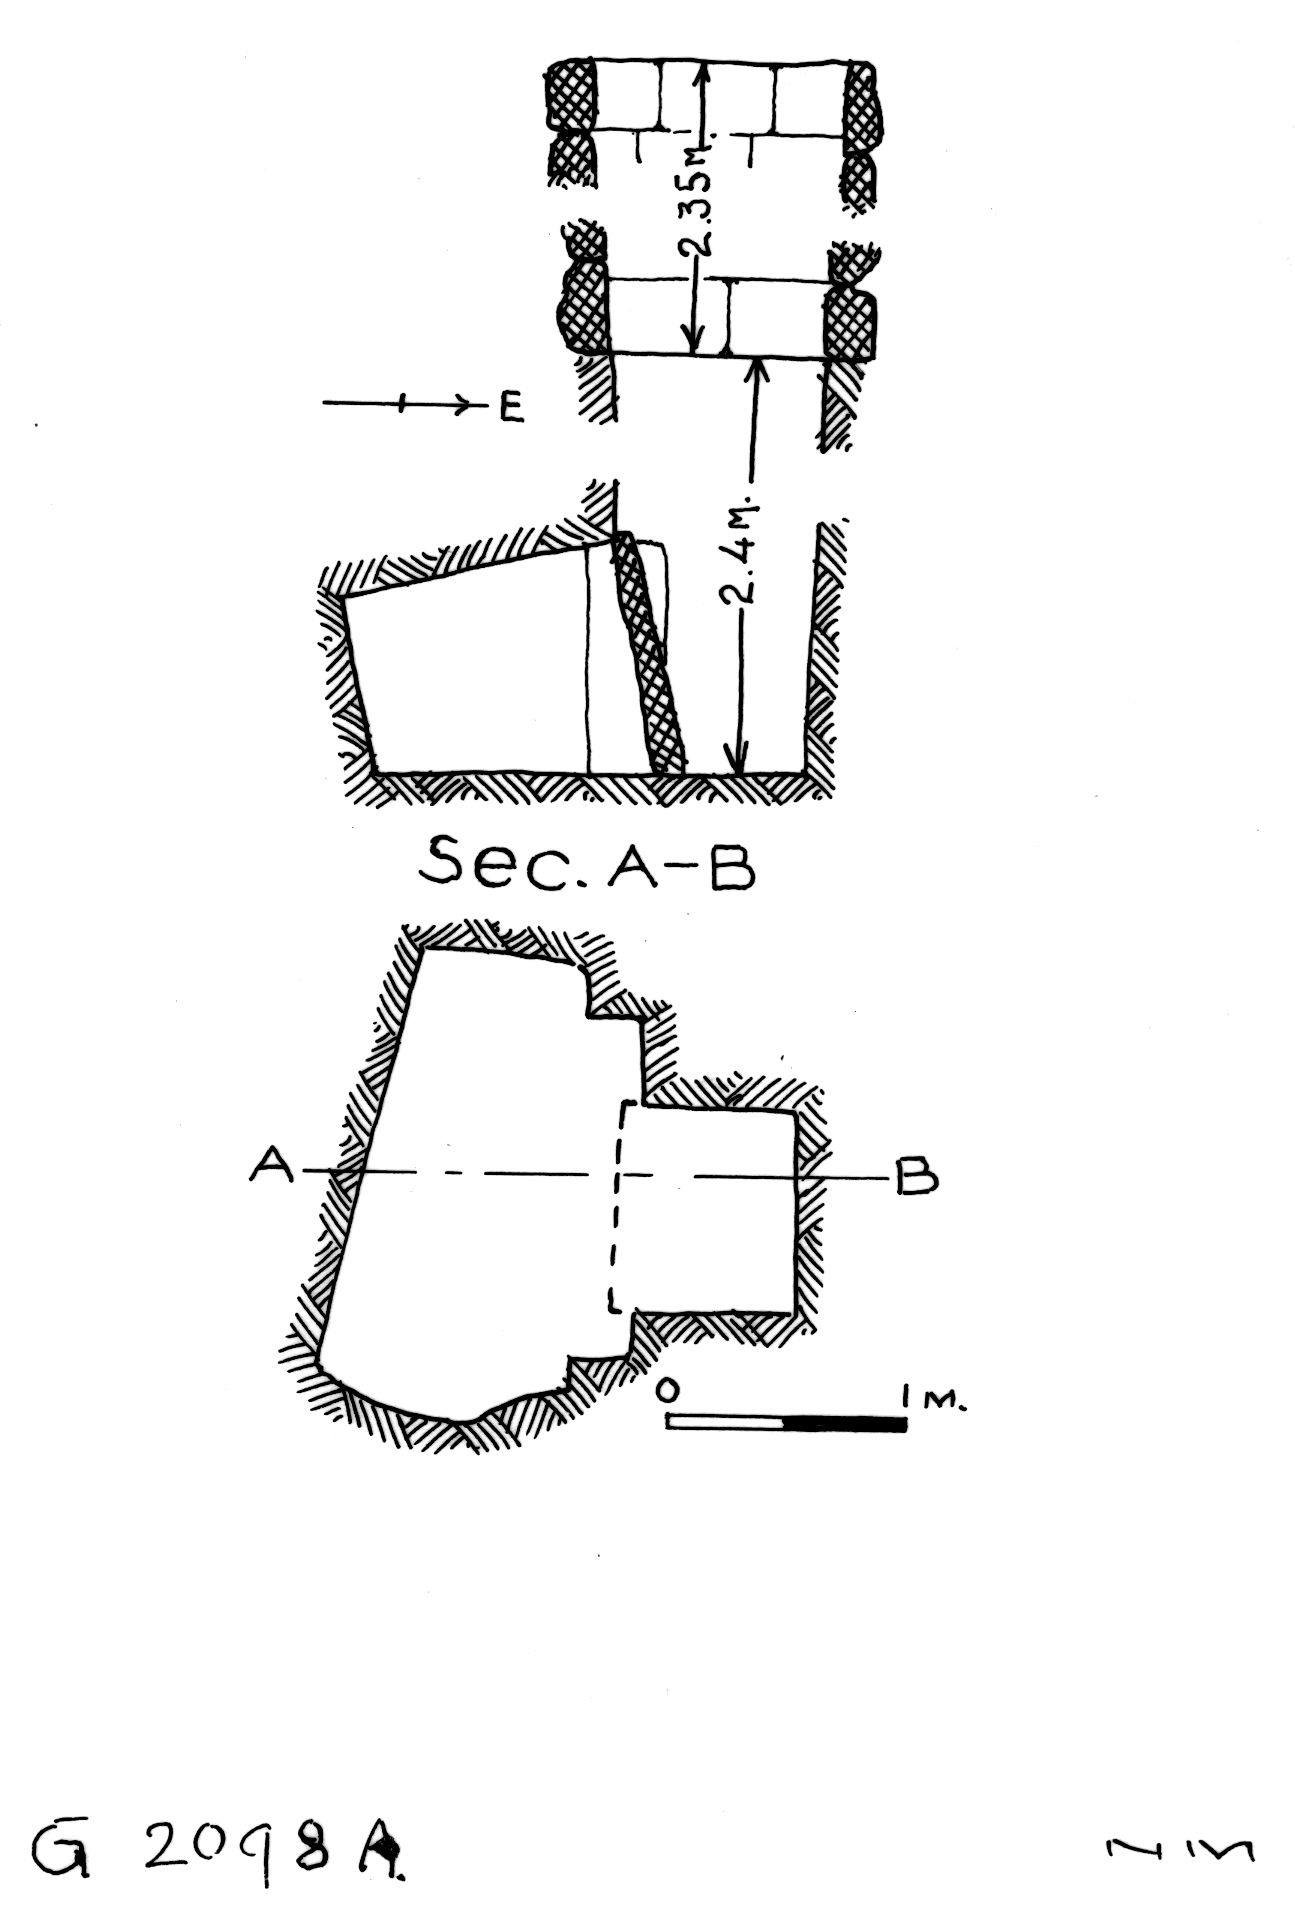 Maps and plans: G 2098, Shaft A